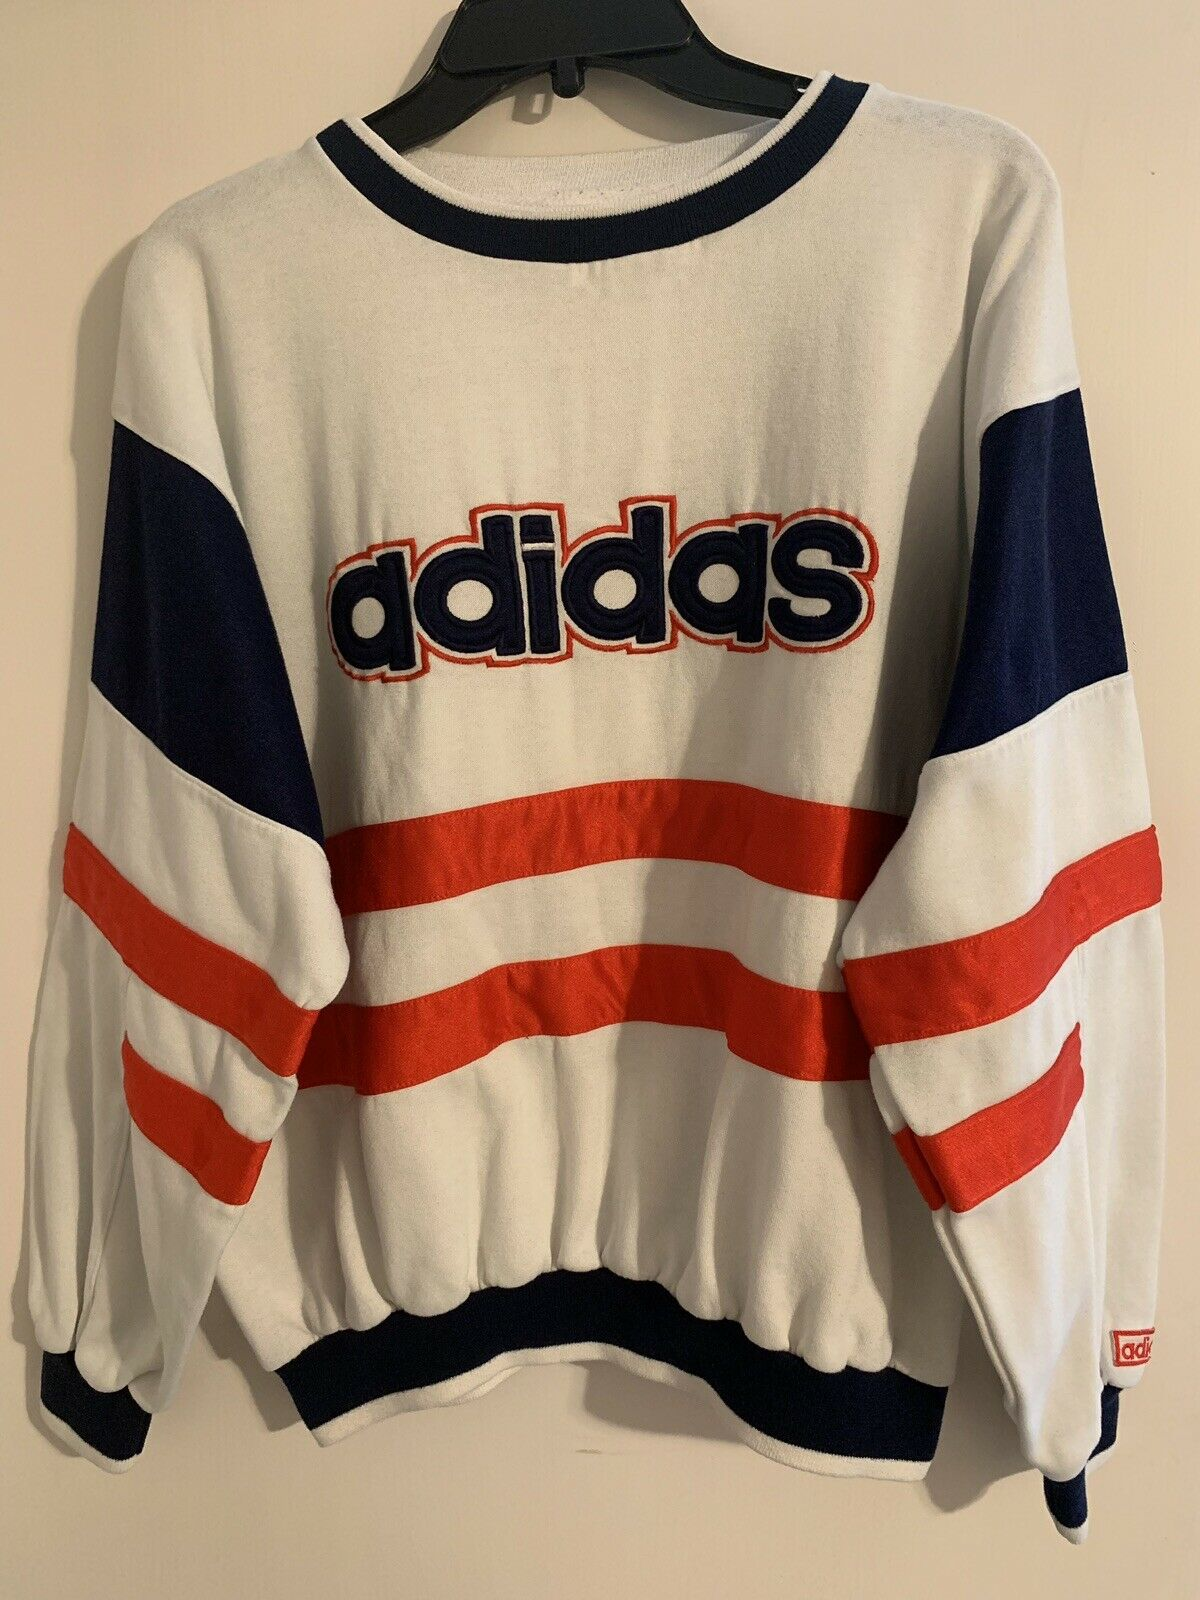 Adidas Vintage Three colors Print  Sweatear